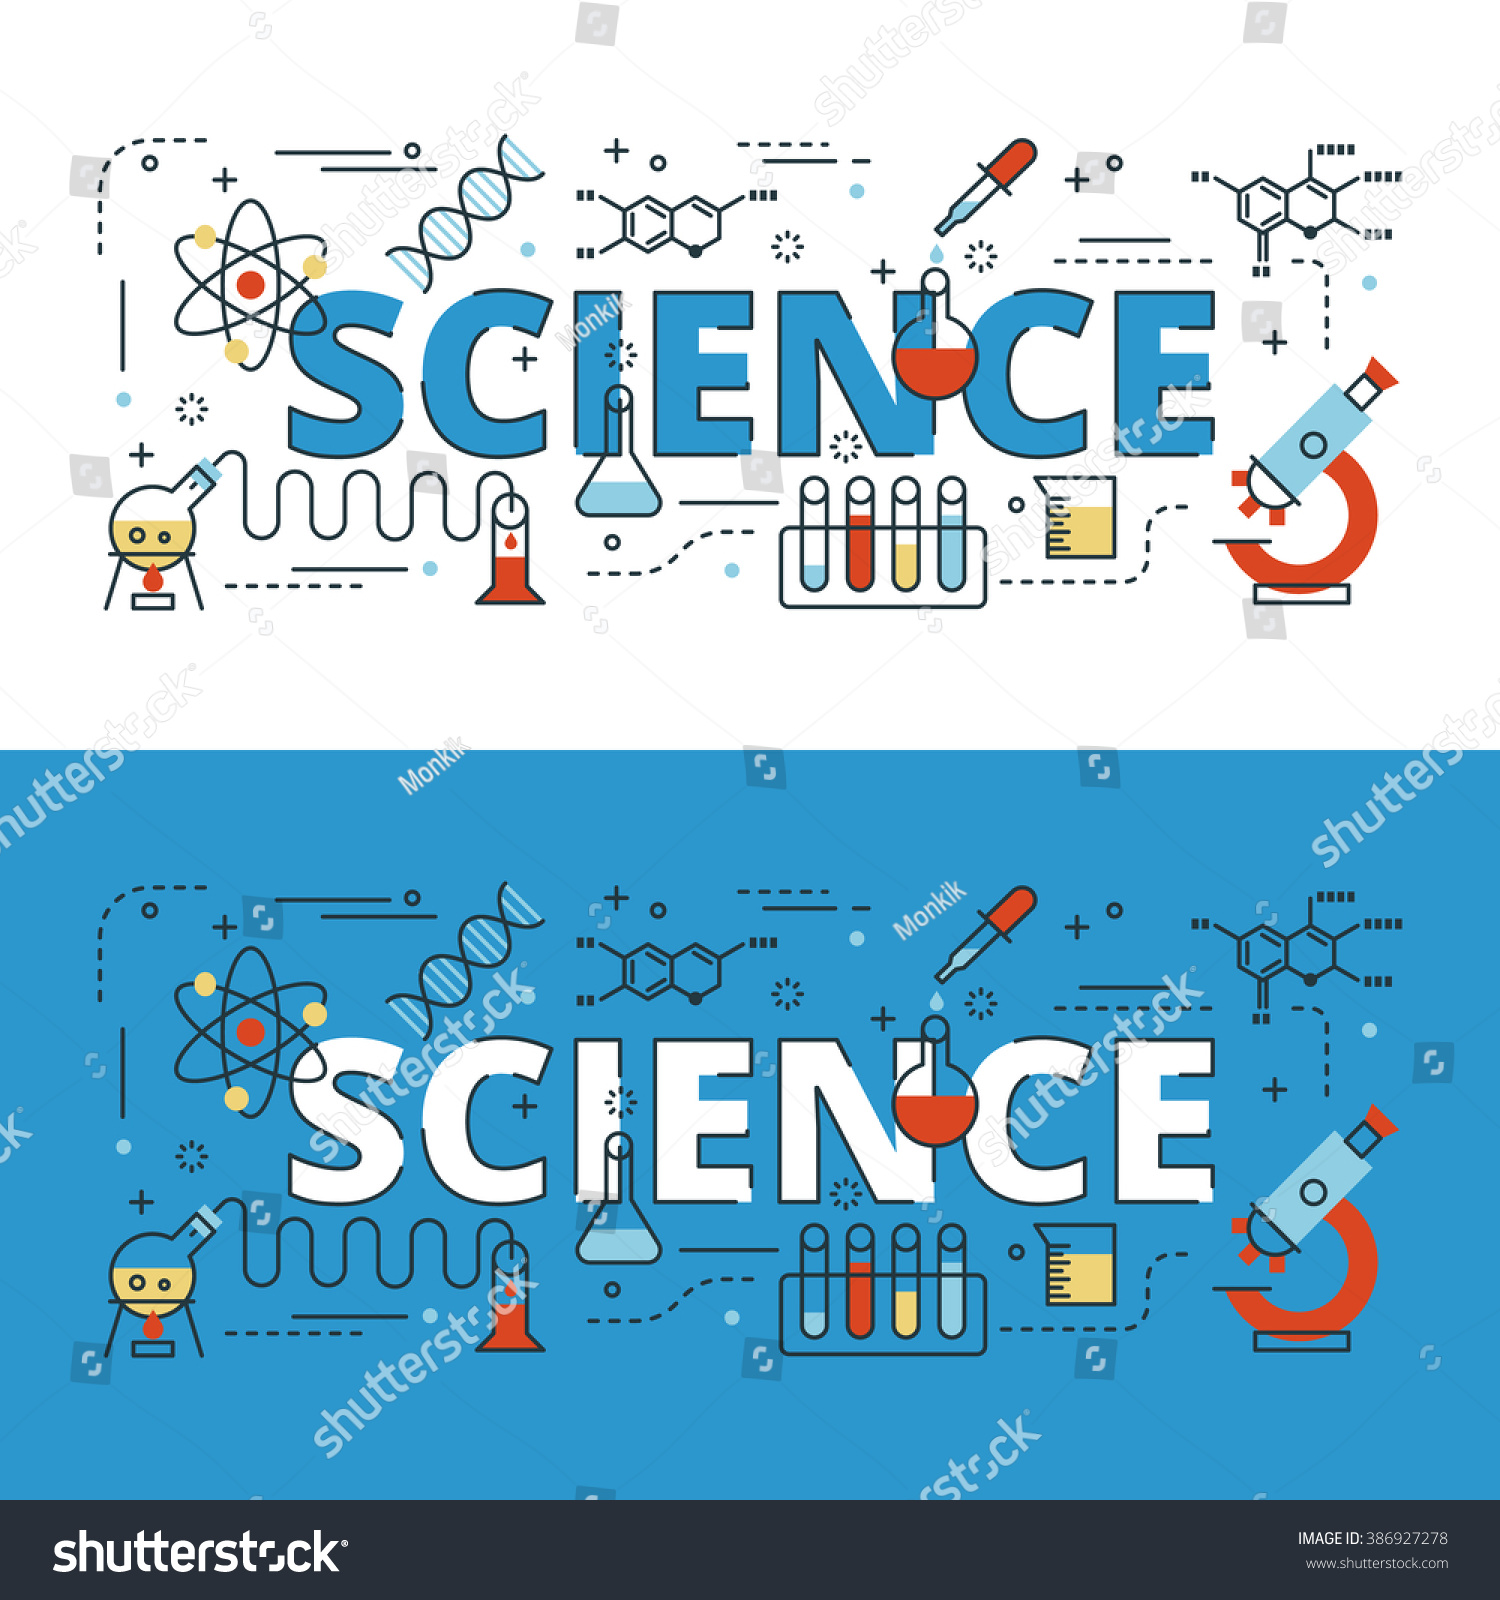 Science School Book Cover ~ Science lettering flat line design icons stock vector